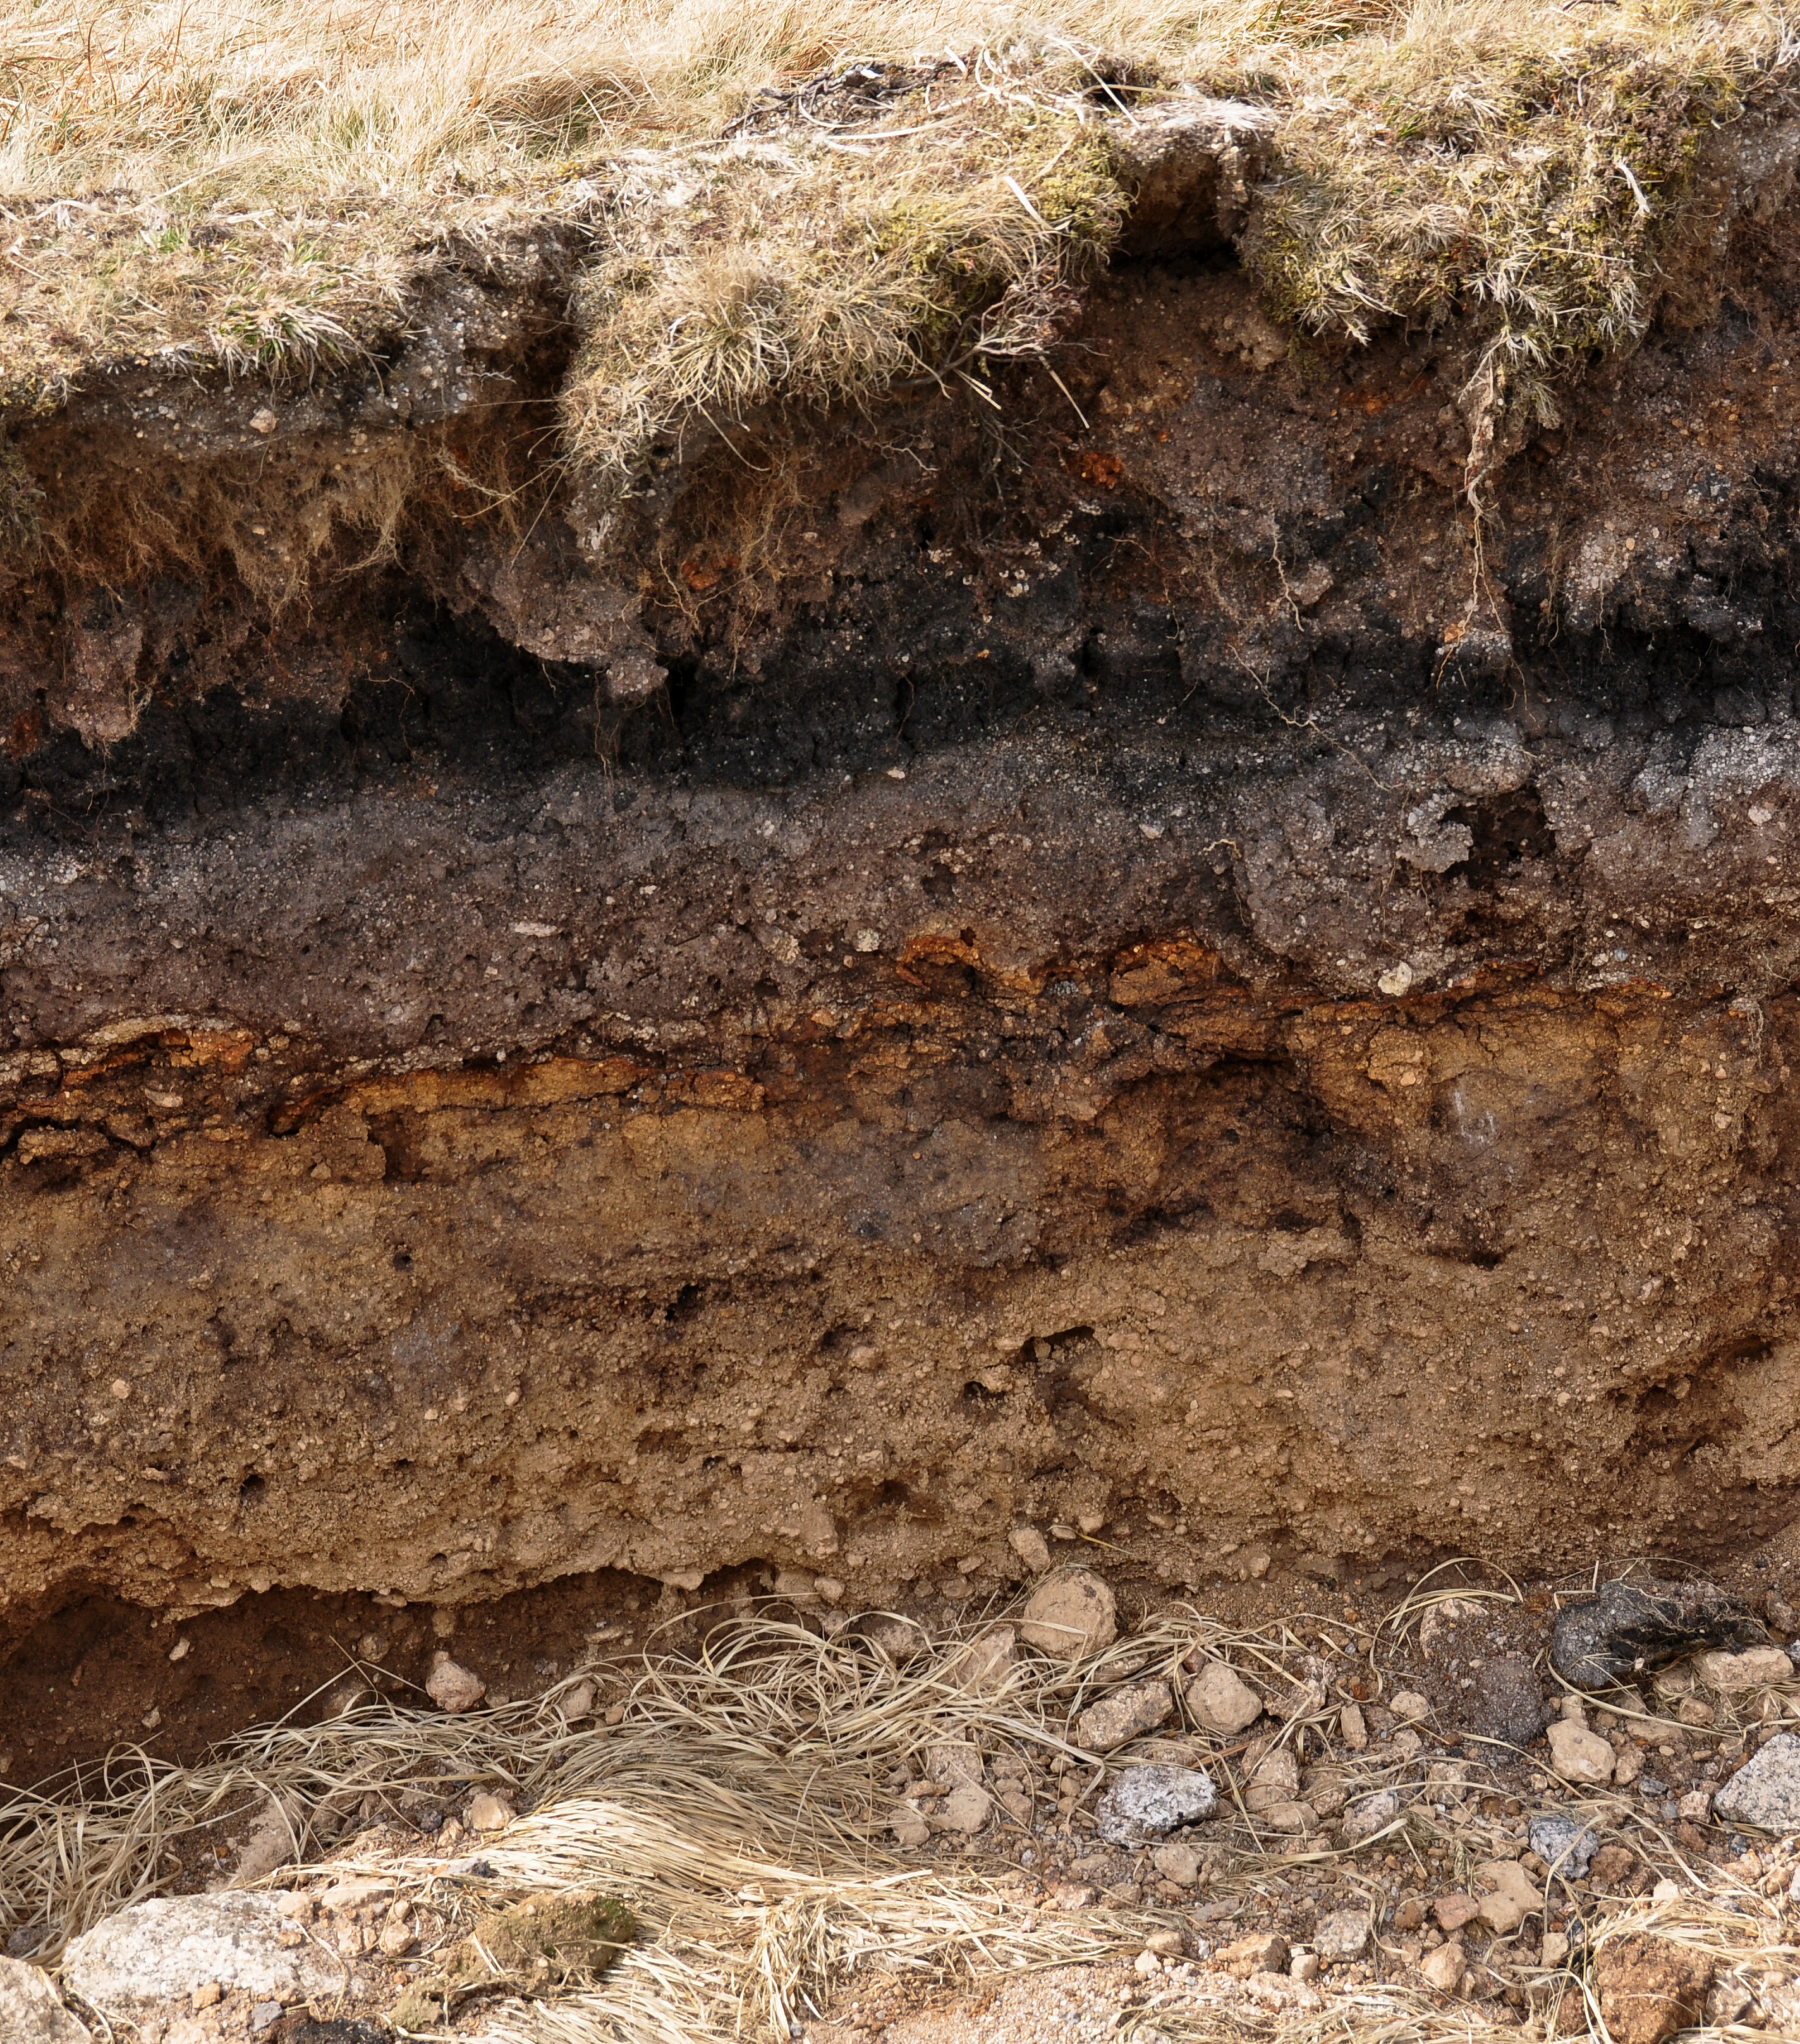 The layers of soil can give its biography.